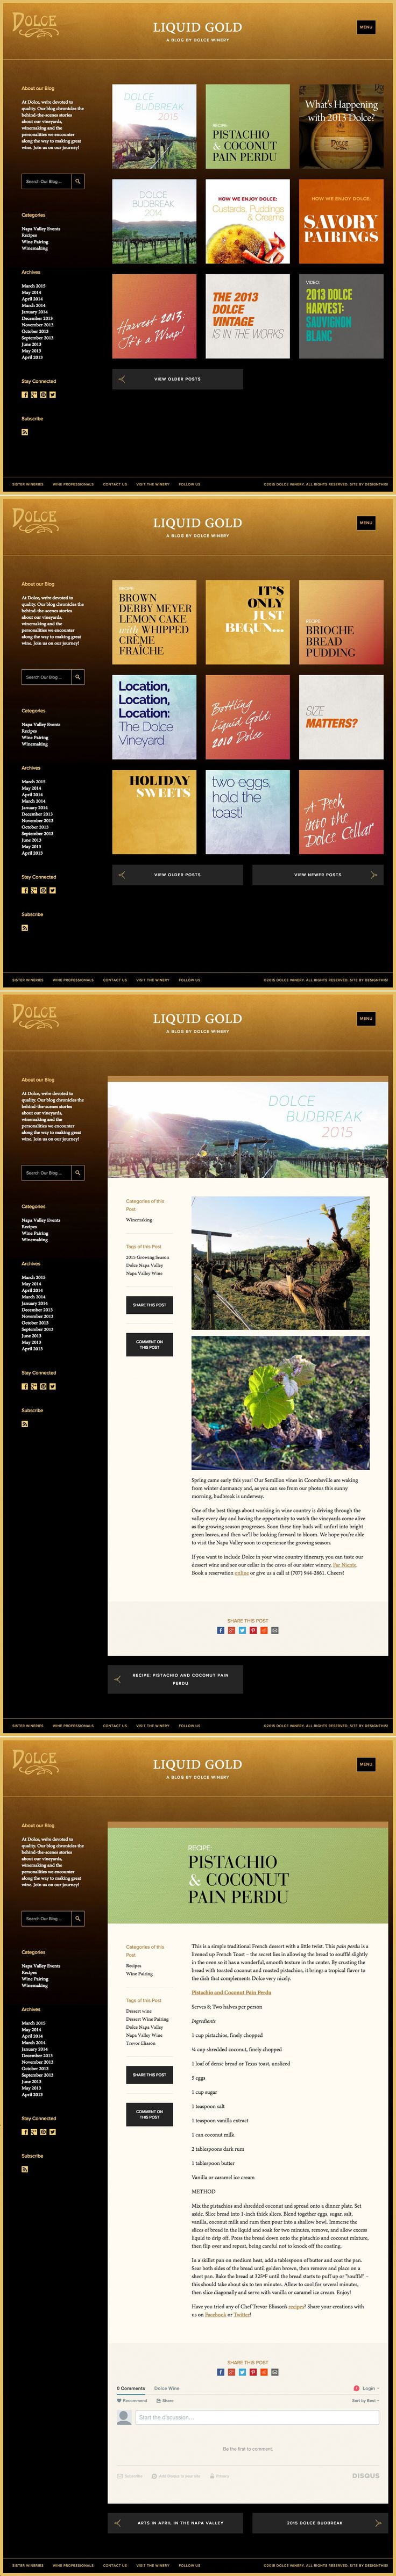 Dolce Winery   Blog   by designthis!